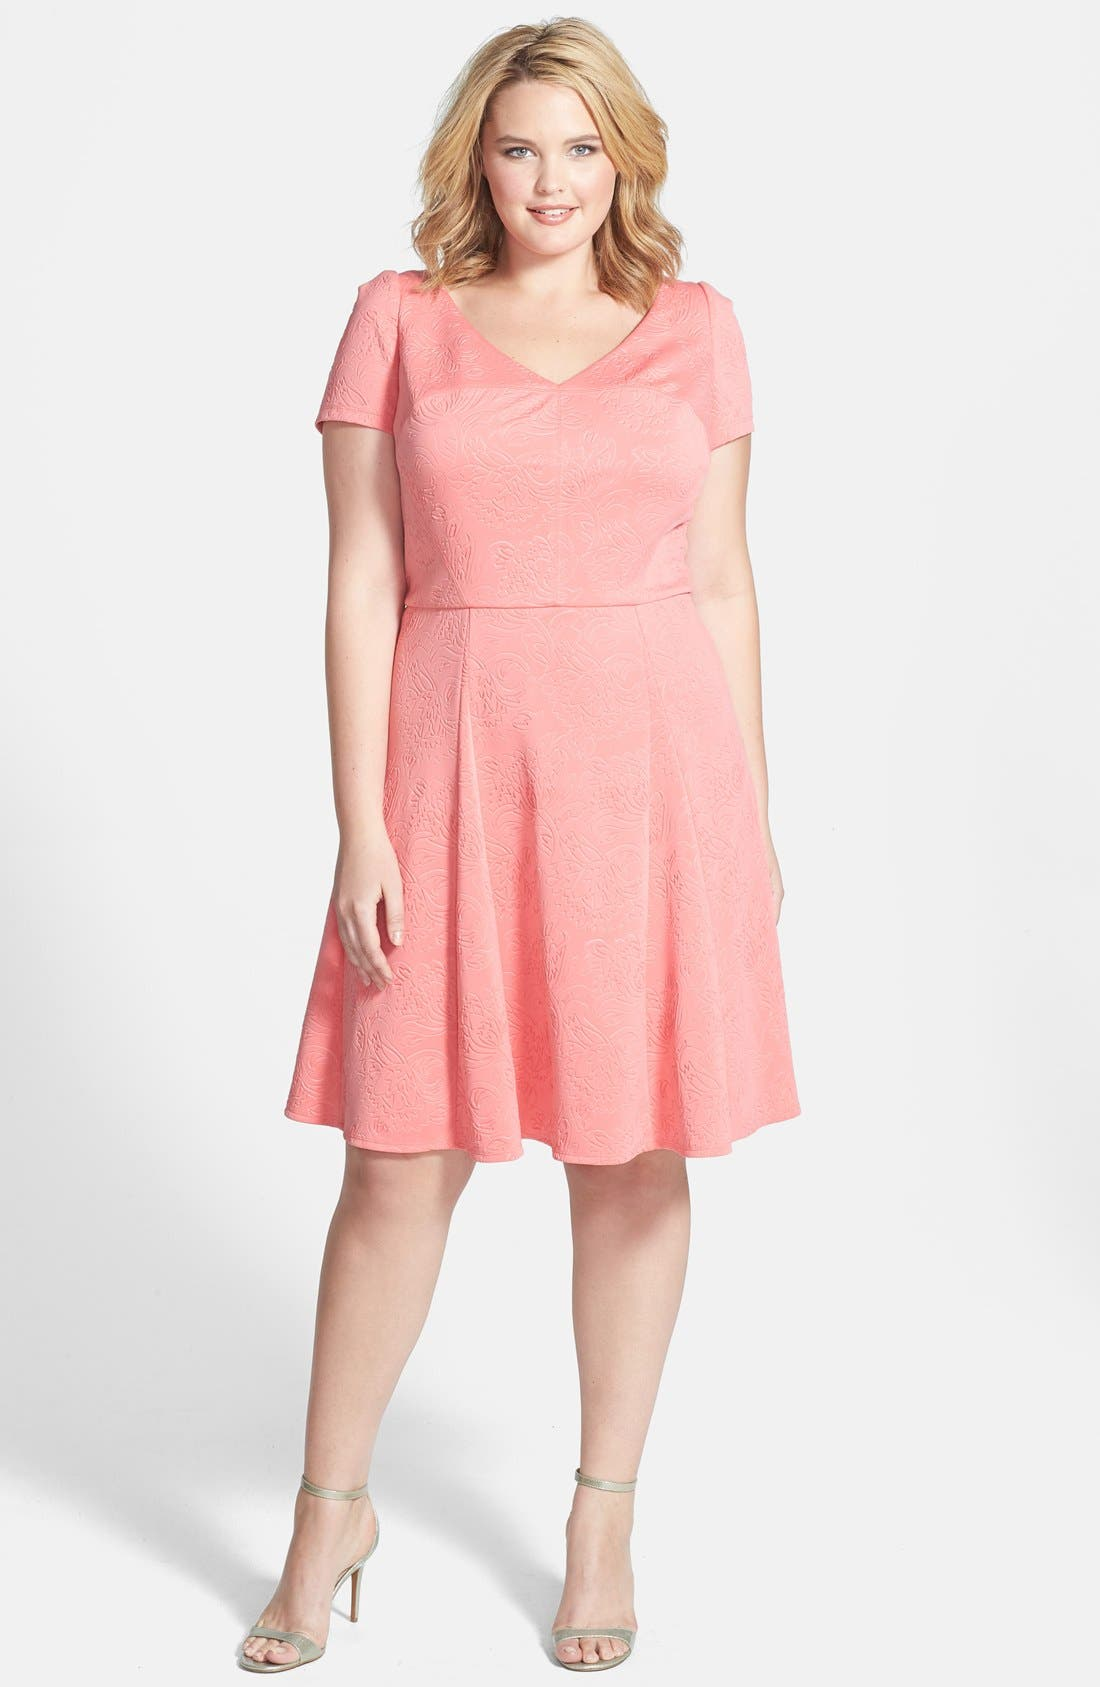 Main Image - ABS by Allen Schwartz Embossed Floral Fit & Flare Dress (Plus Size)